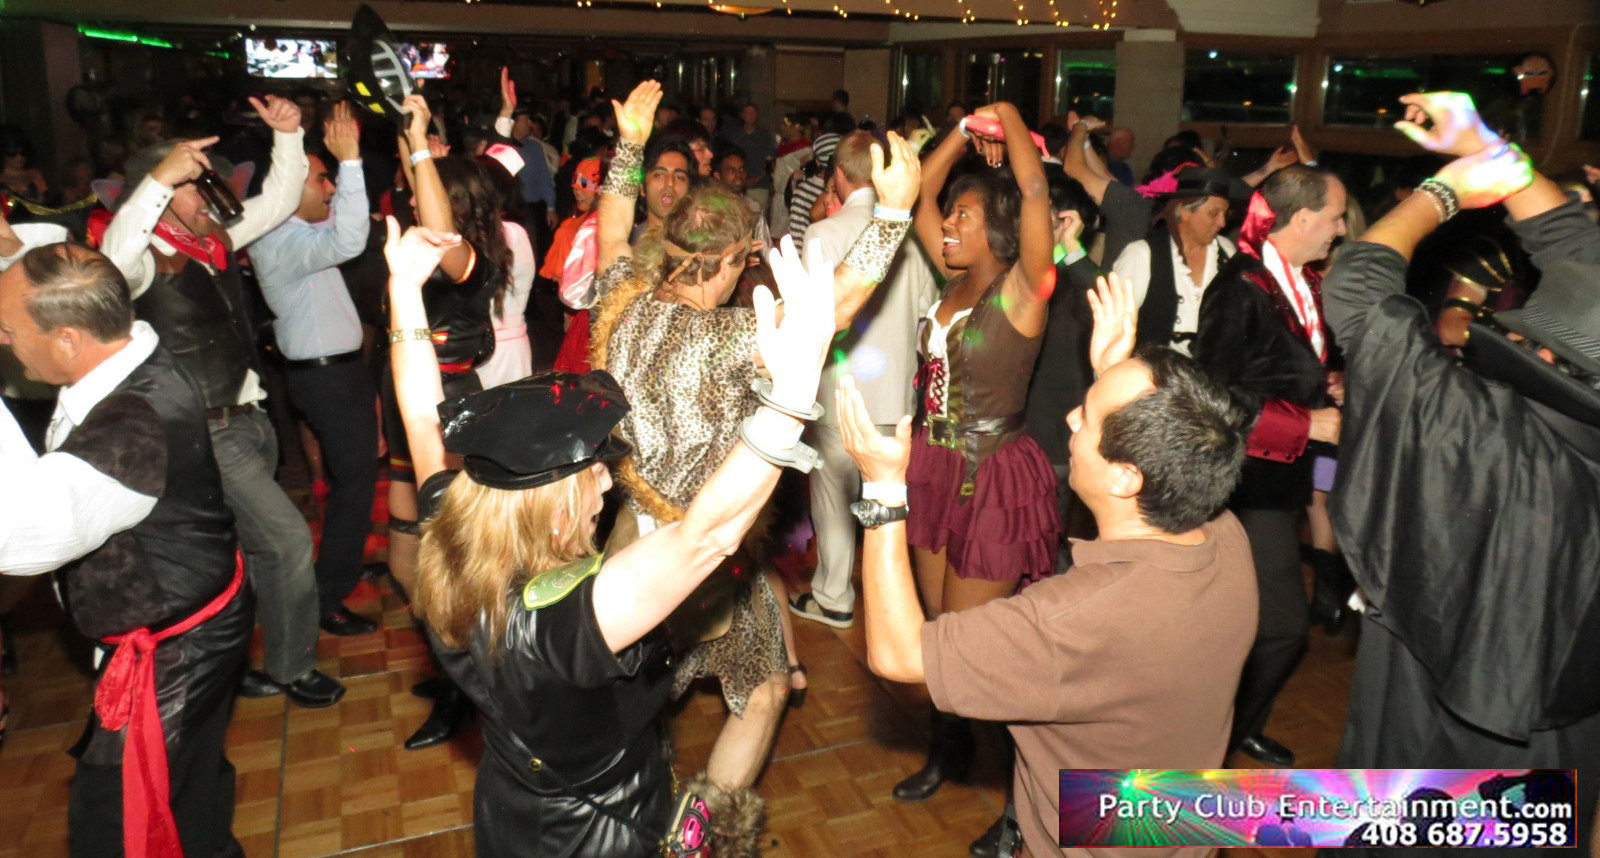 ☆Let's Celebrate At The Biggest Halloween Dance Extravaganza Ever ...